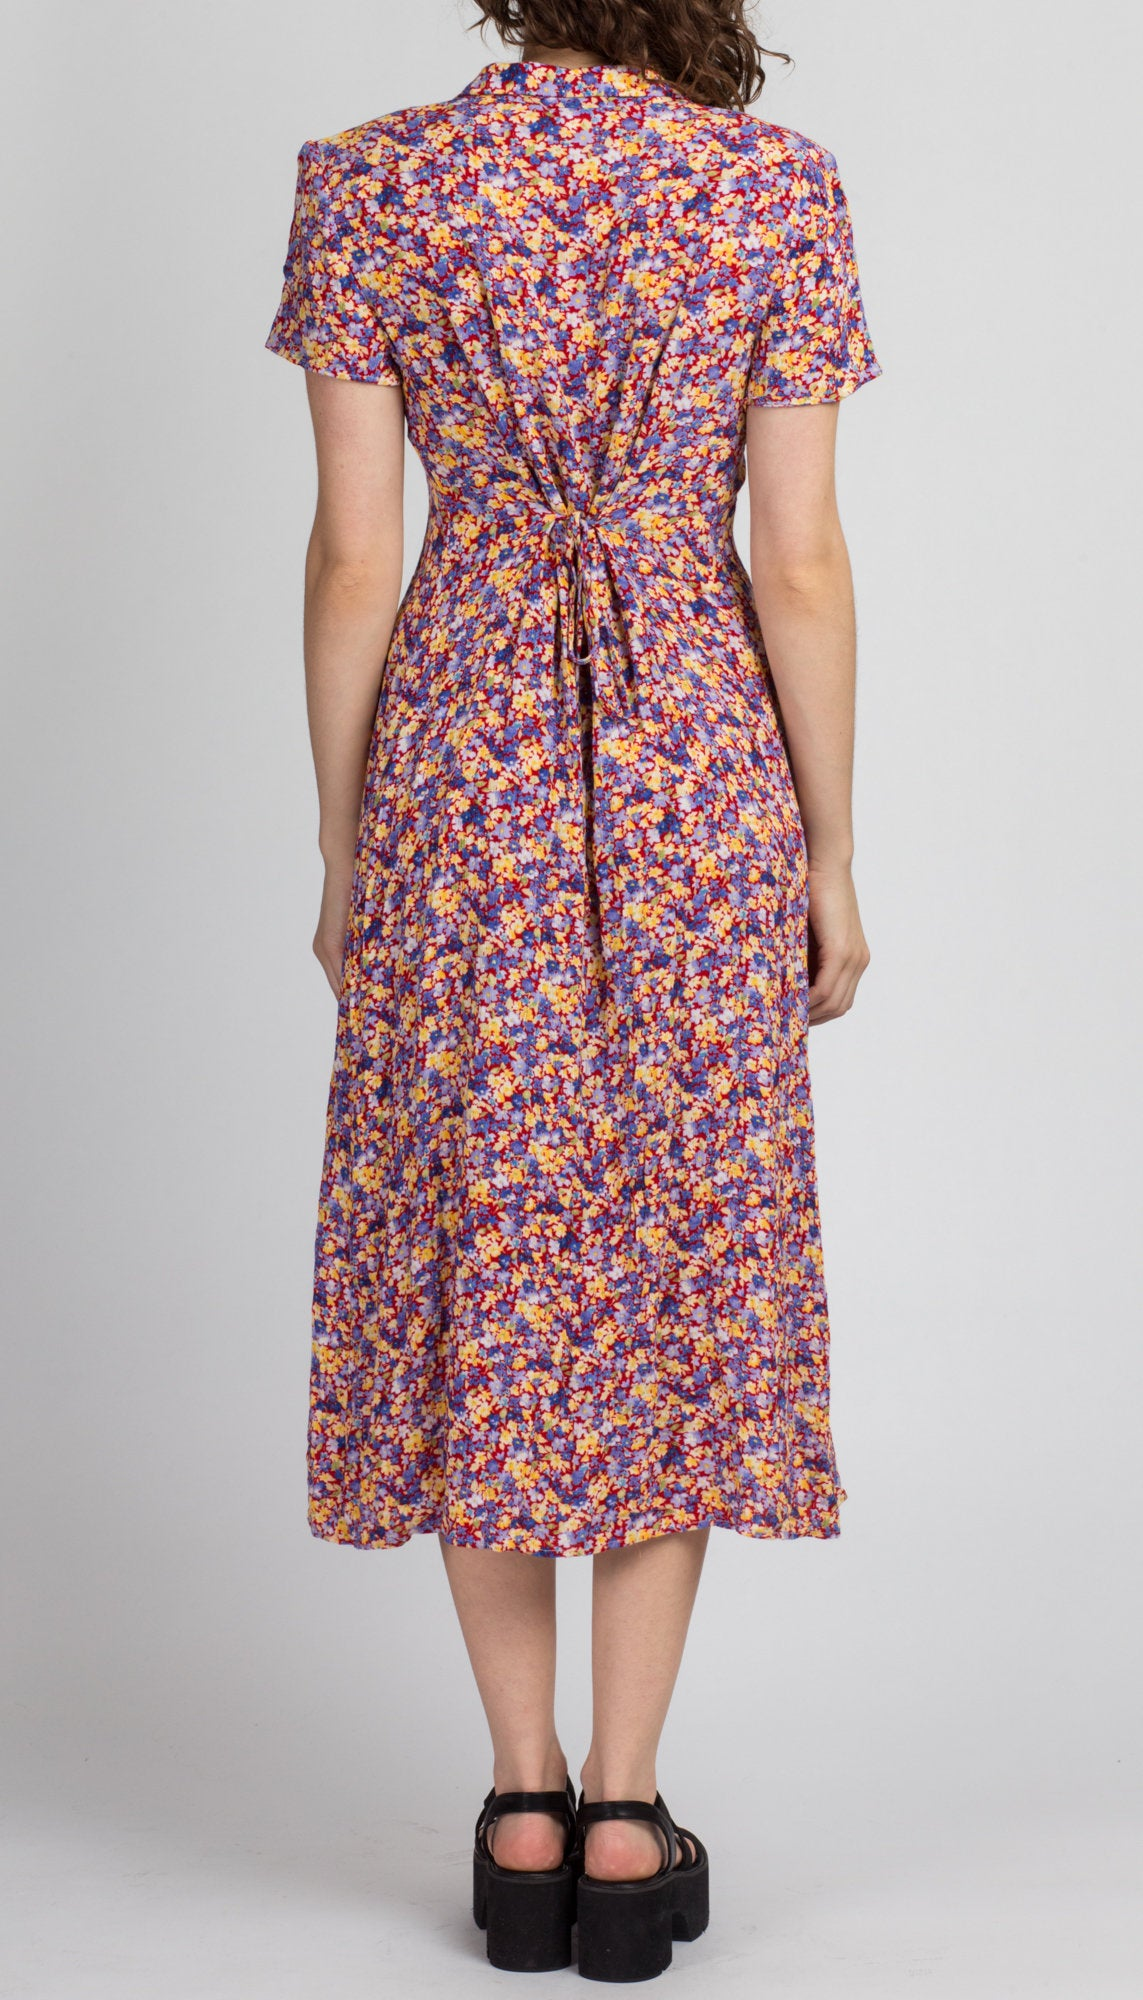 Vintage Red & Purple Floral Grunge Dress - Medium